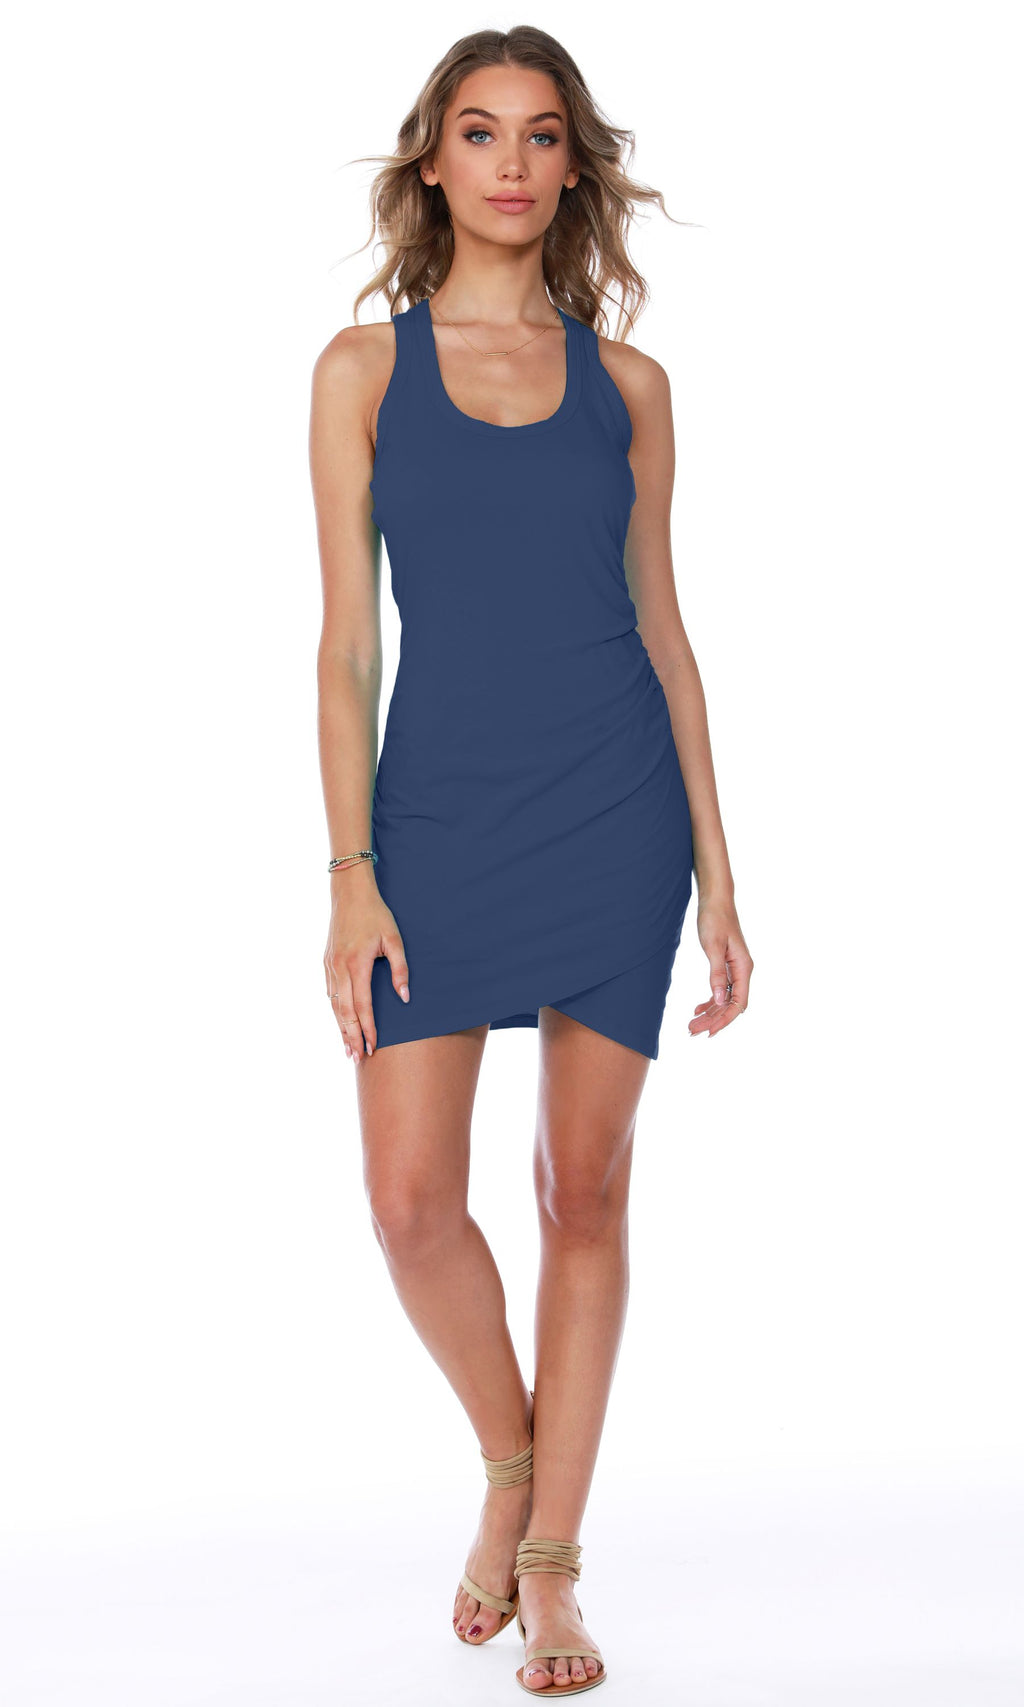 Surplice Tank Dress WAS 65 NOW 60 in Grey or Navy